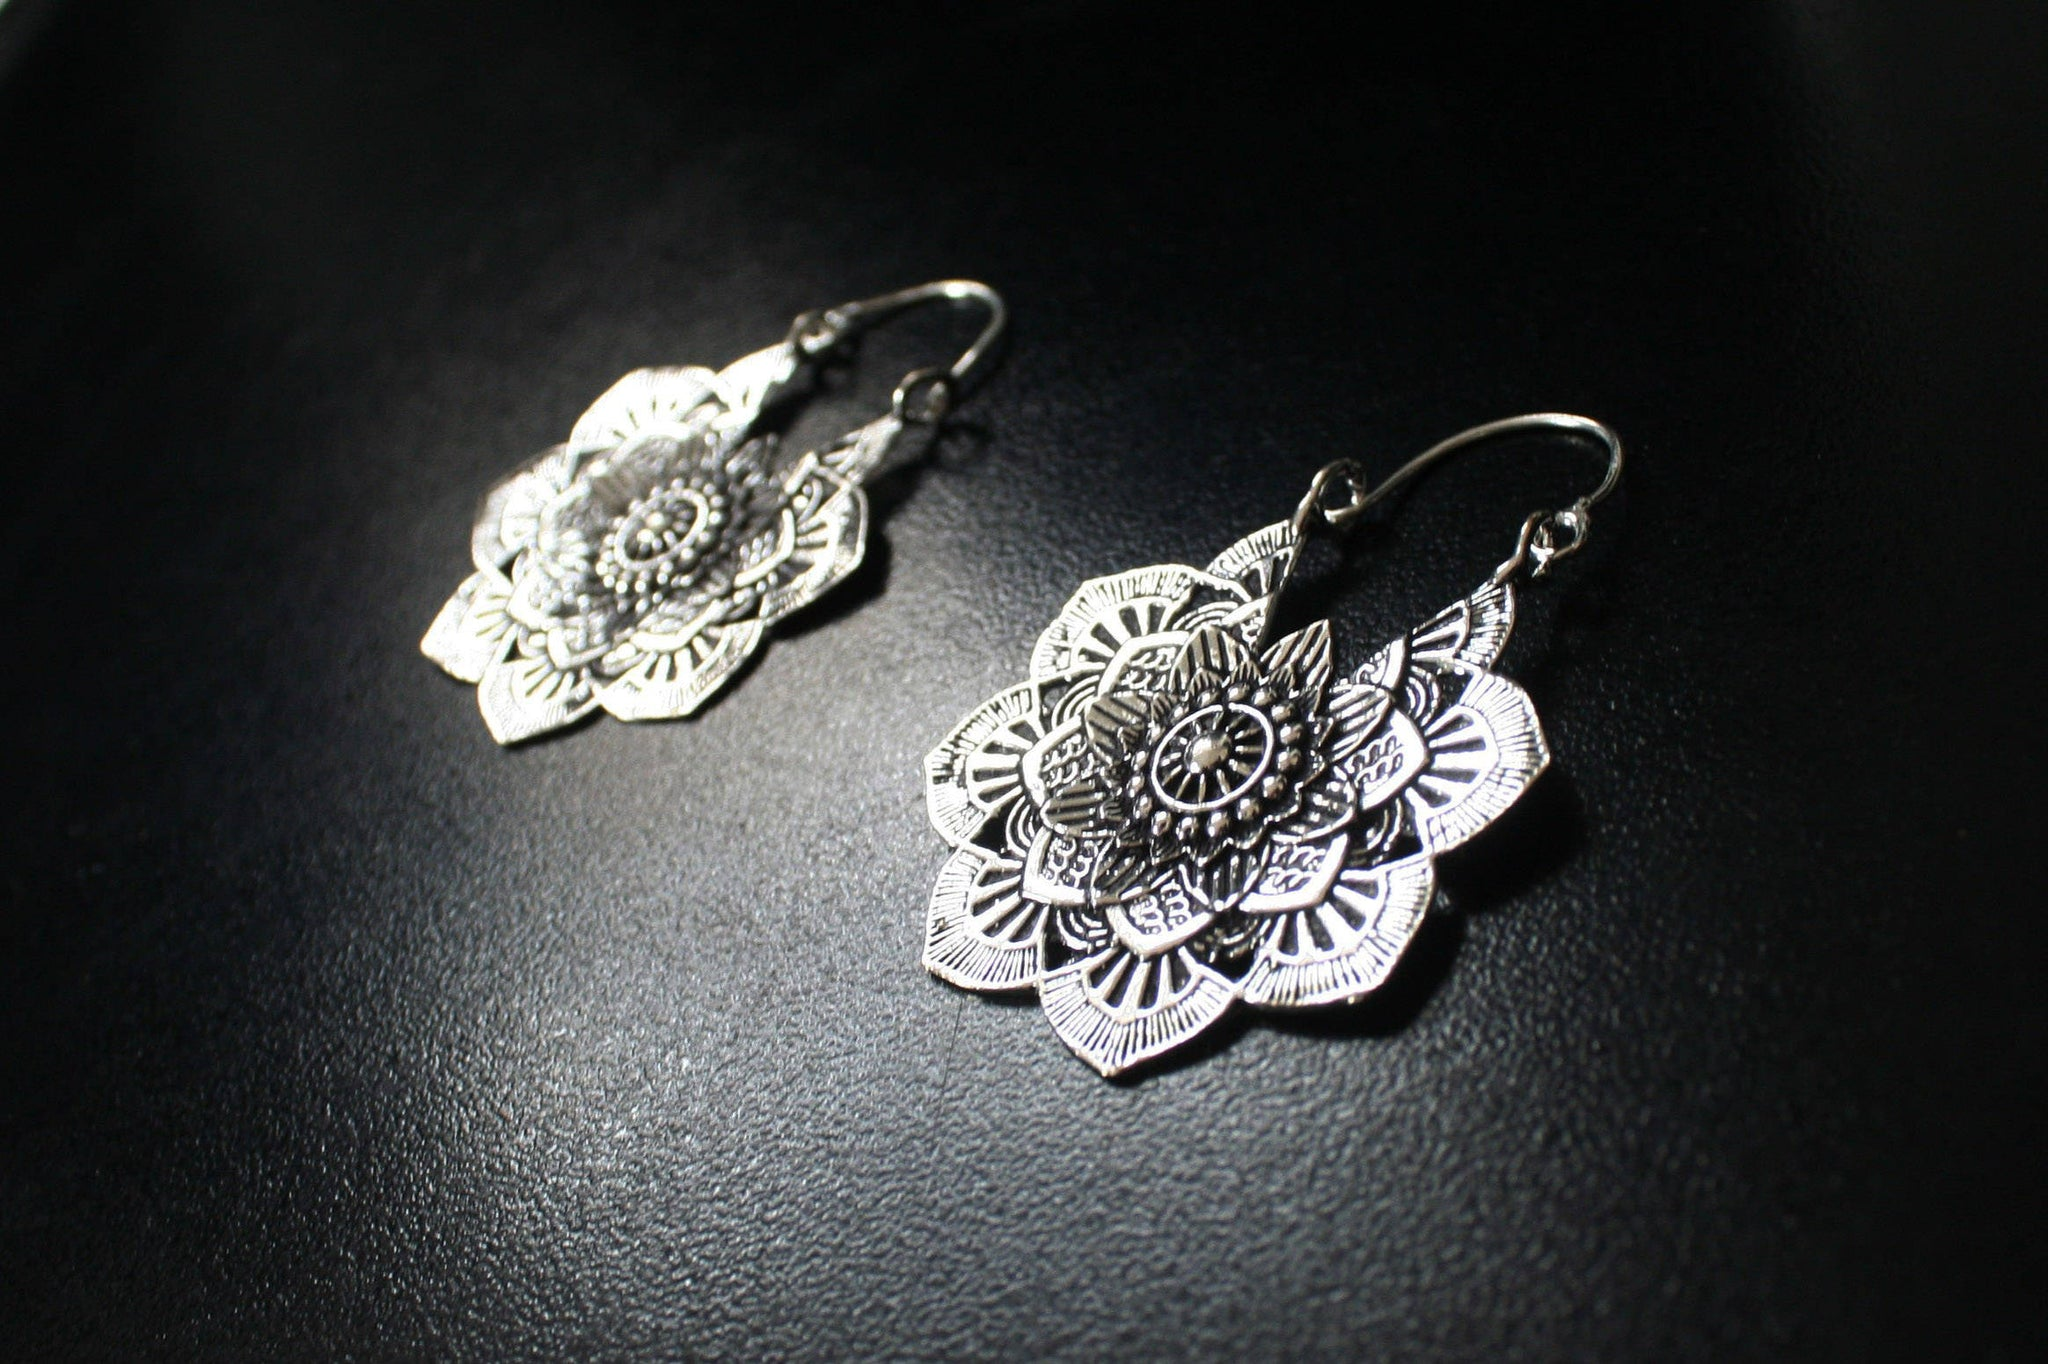 MANDALA Earrings - Silver Earrings, Gypsy Earrings, Flower Earrings, Lotus Earrings, Geometric Earrings, Tribal Earrings, Psytrance, Psy